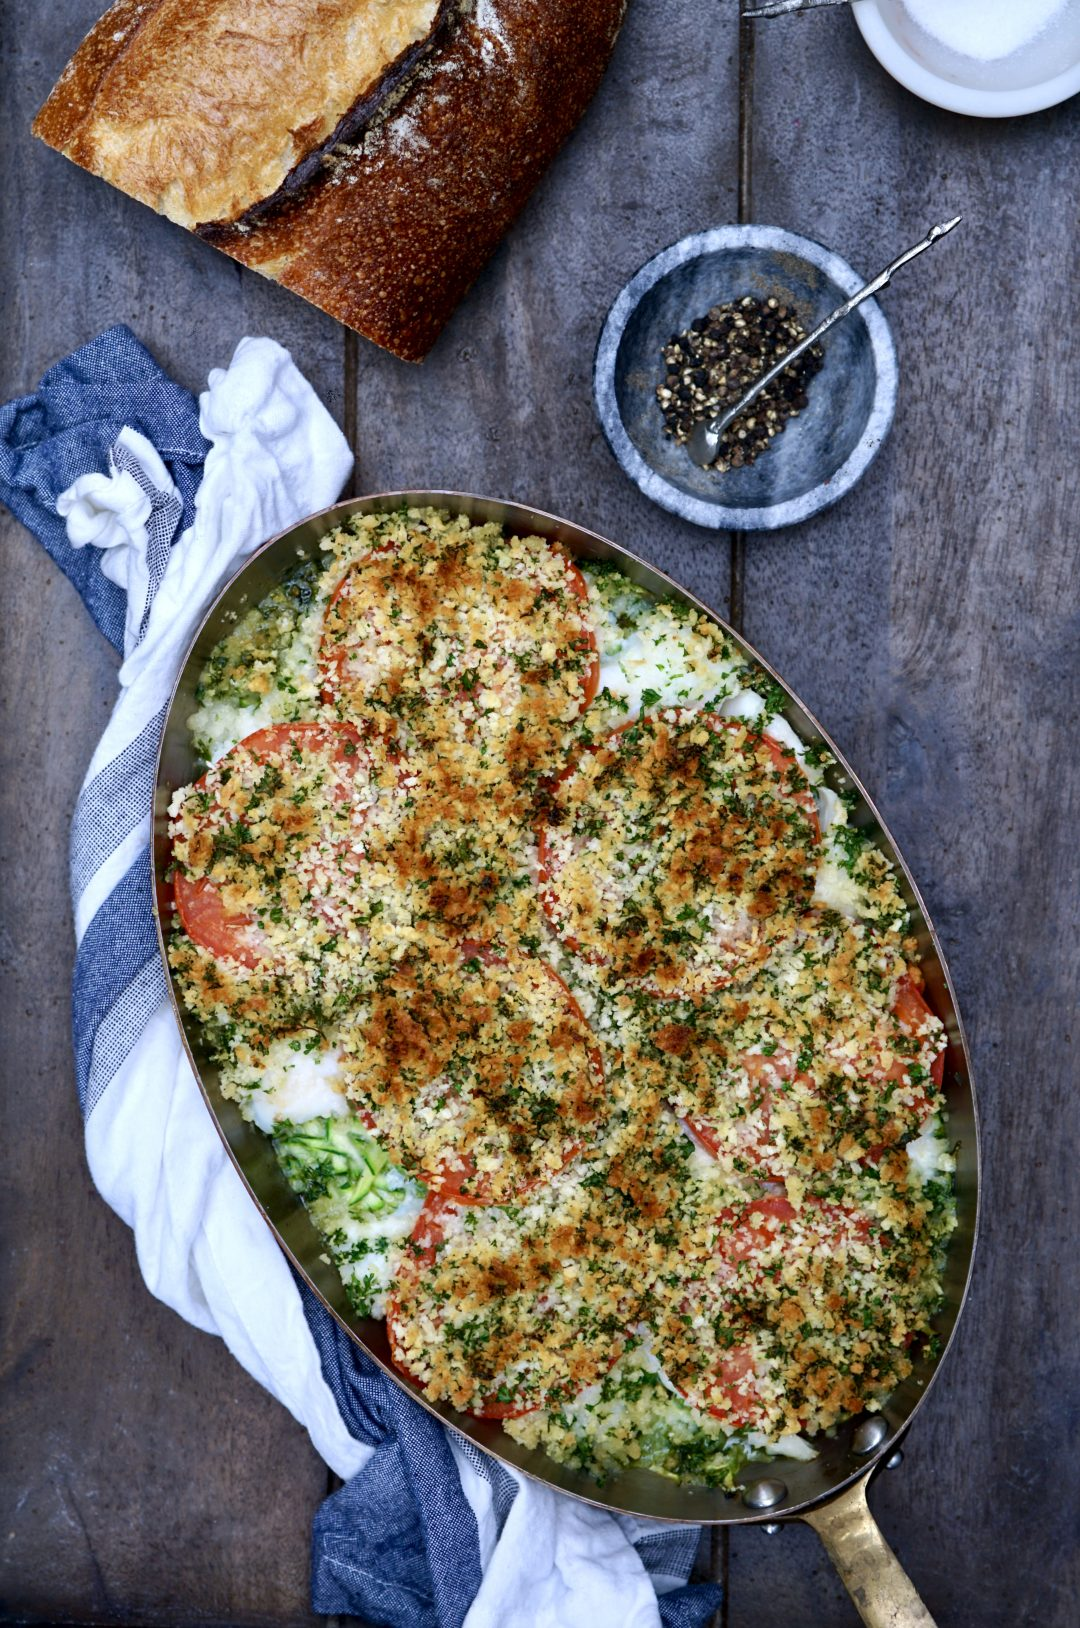 Gratin of Haddock With Zucchini And Tomato